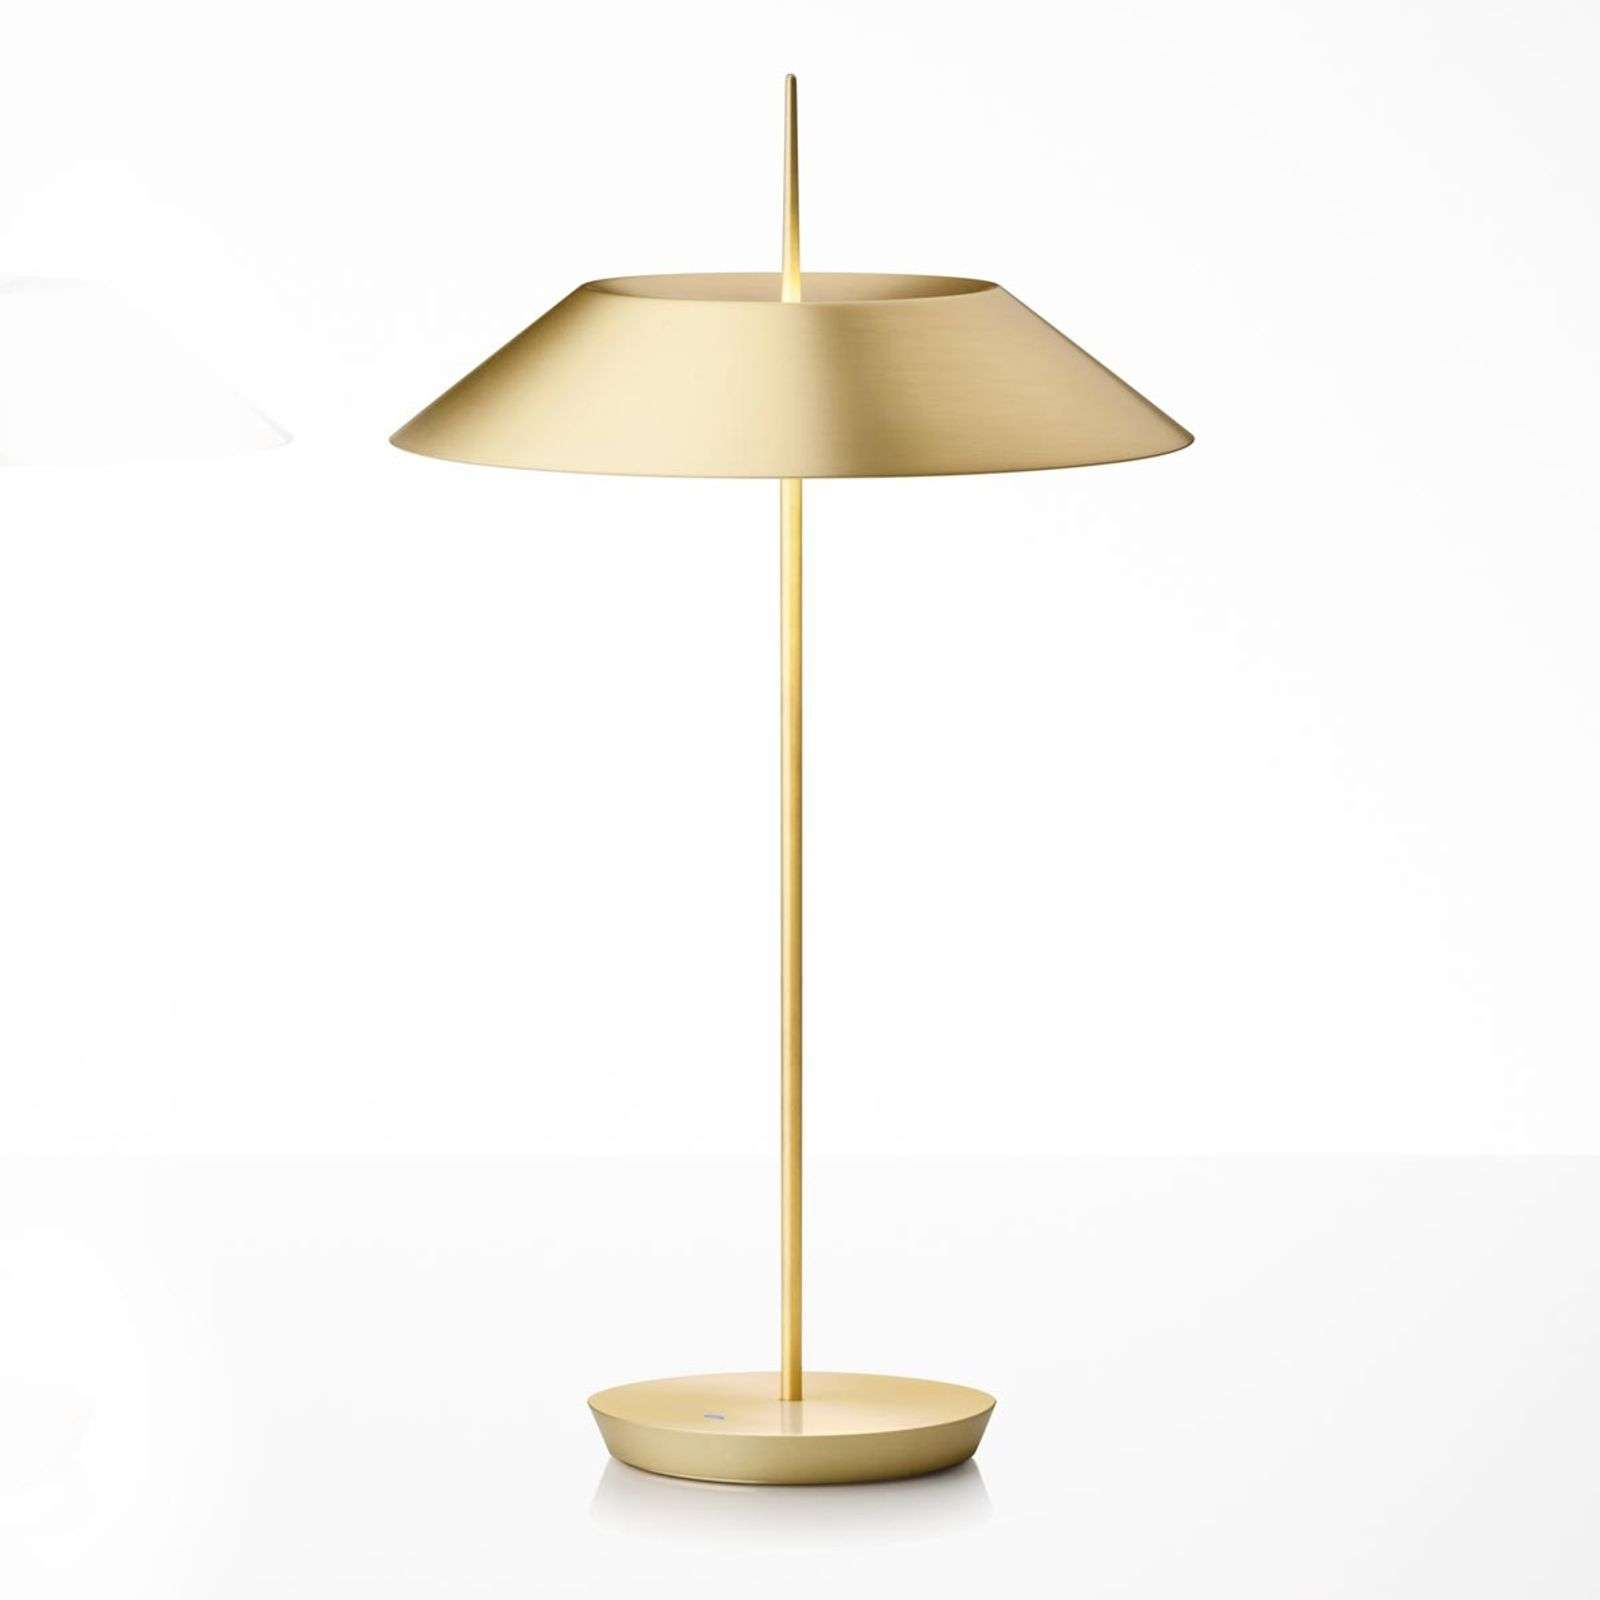 Vibia Mayfair LED tafellamp, mat goud